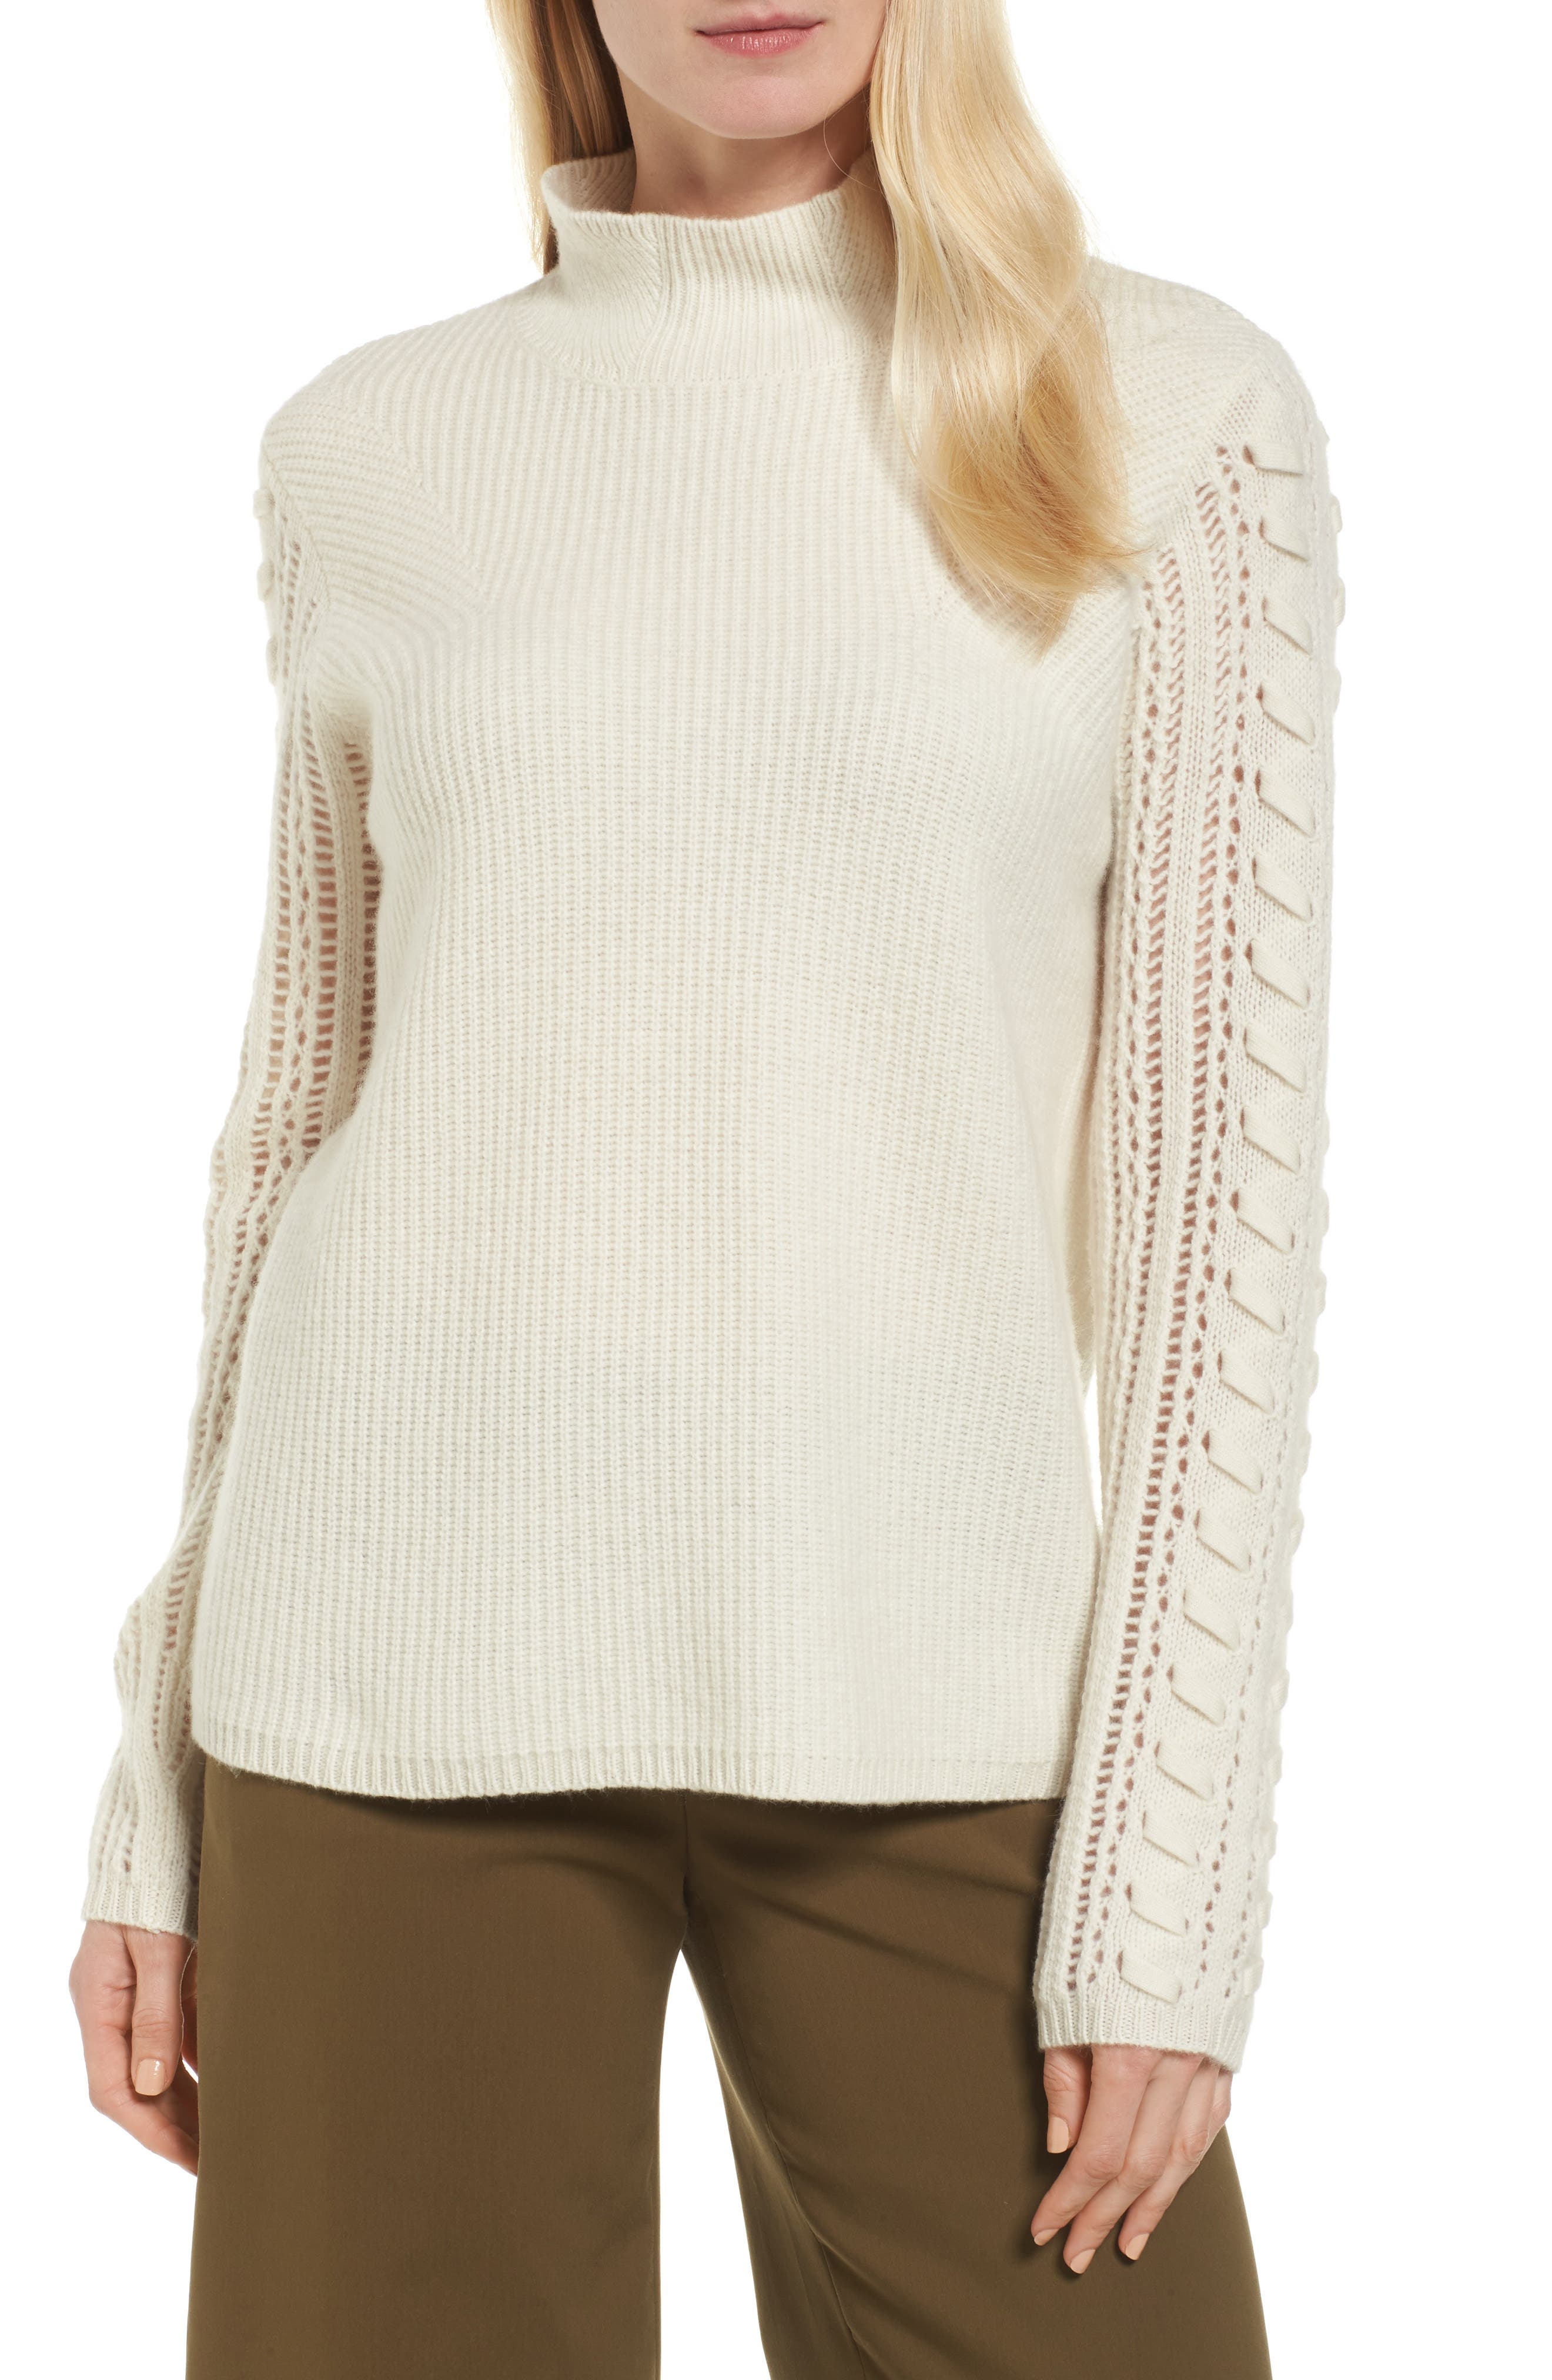 Emerson Rose Mixed Stitch Cashmere Sweater